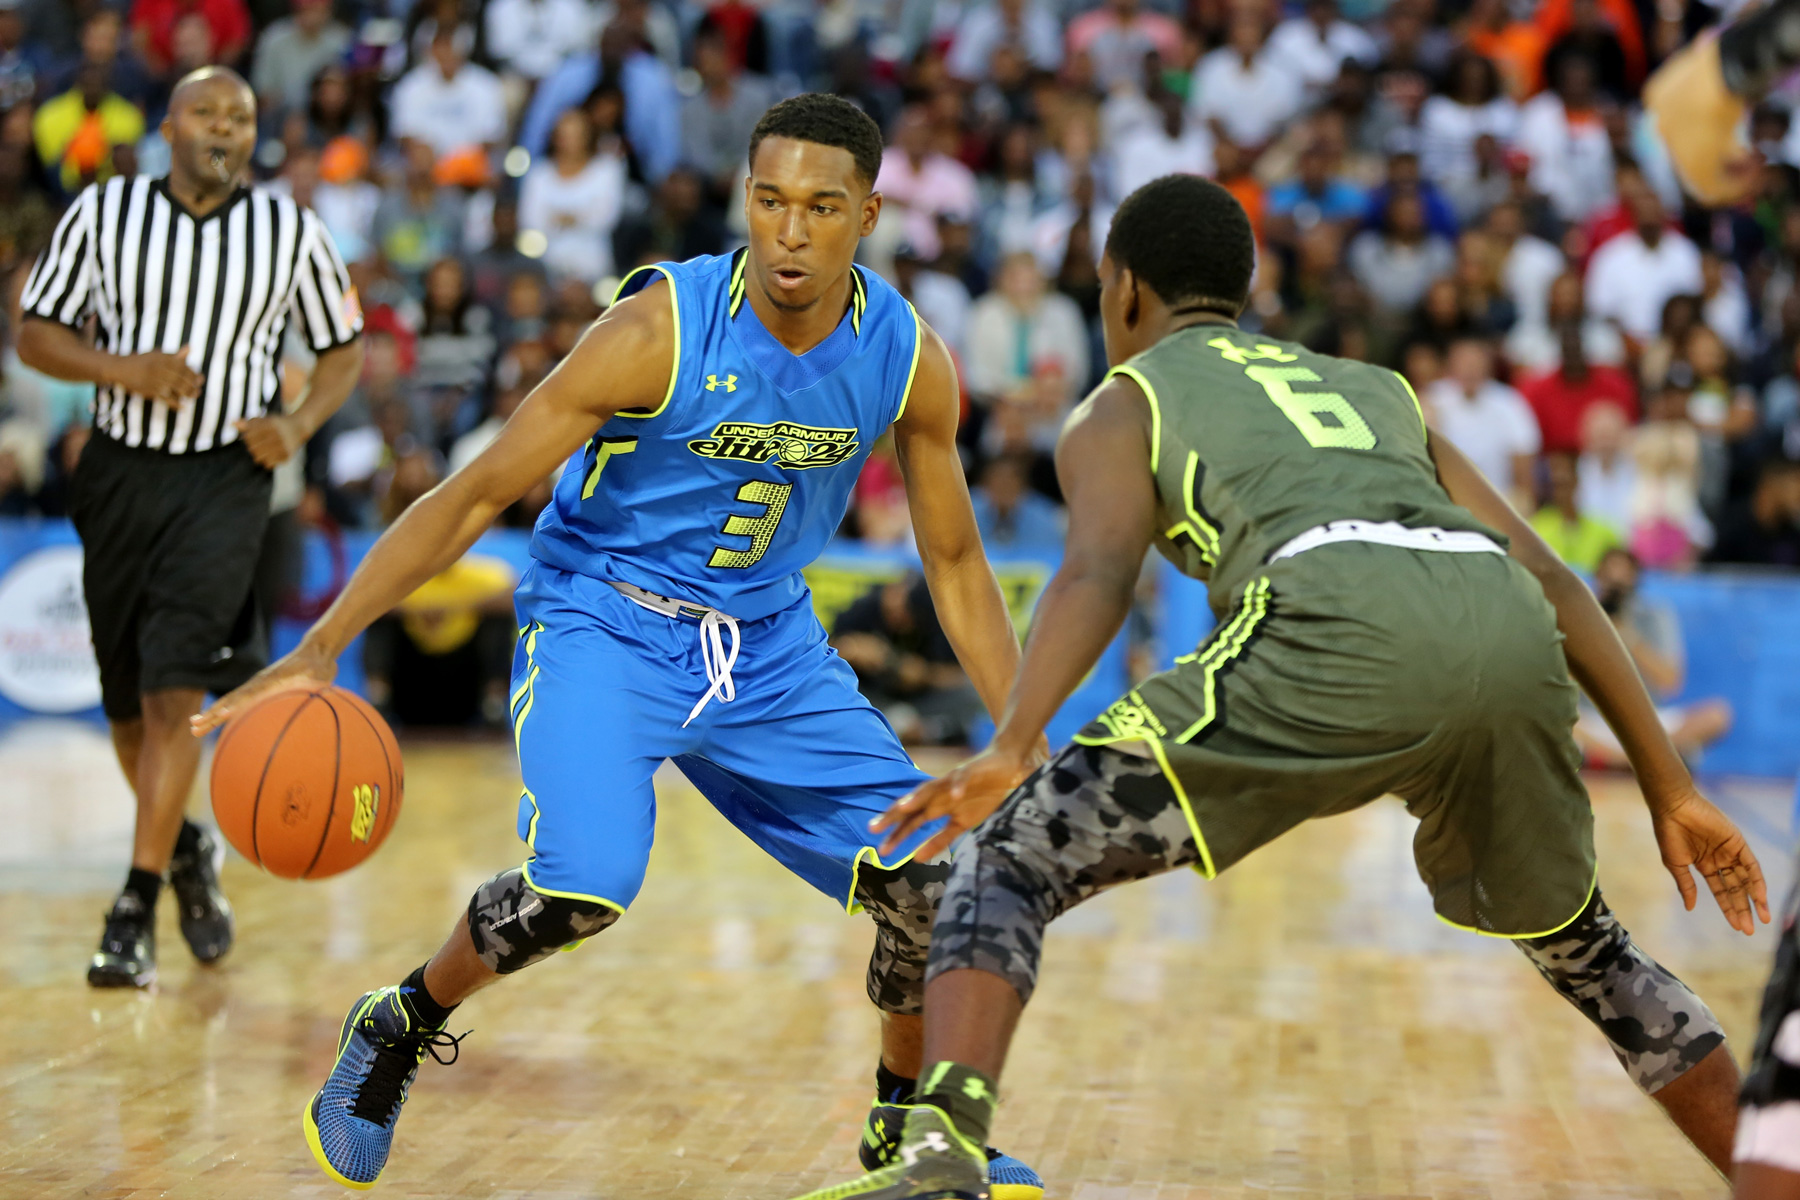 Nike and Under Armour Battle for Top High School Prospects